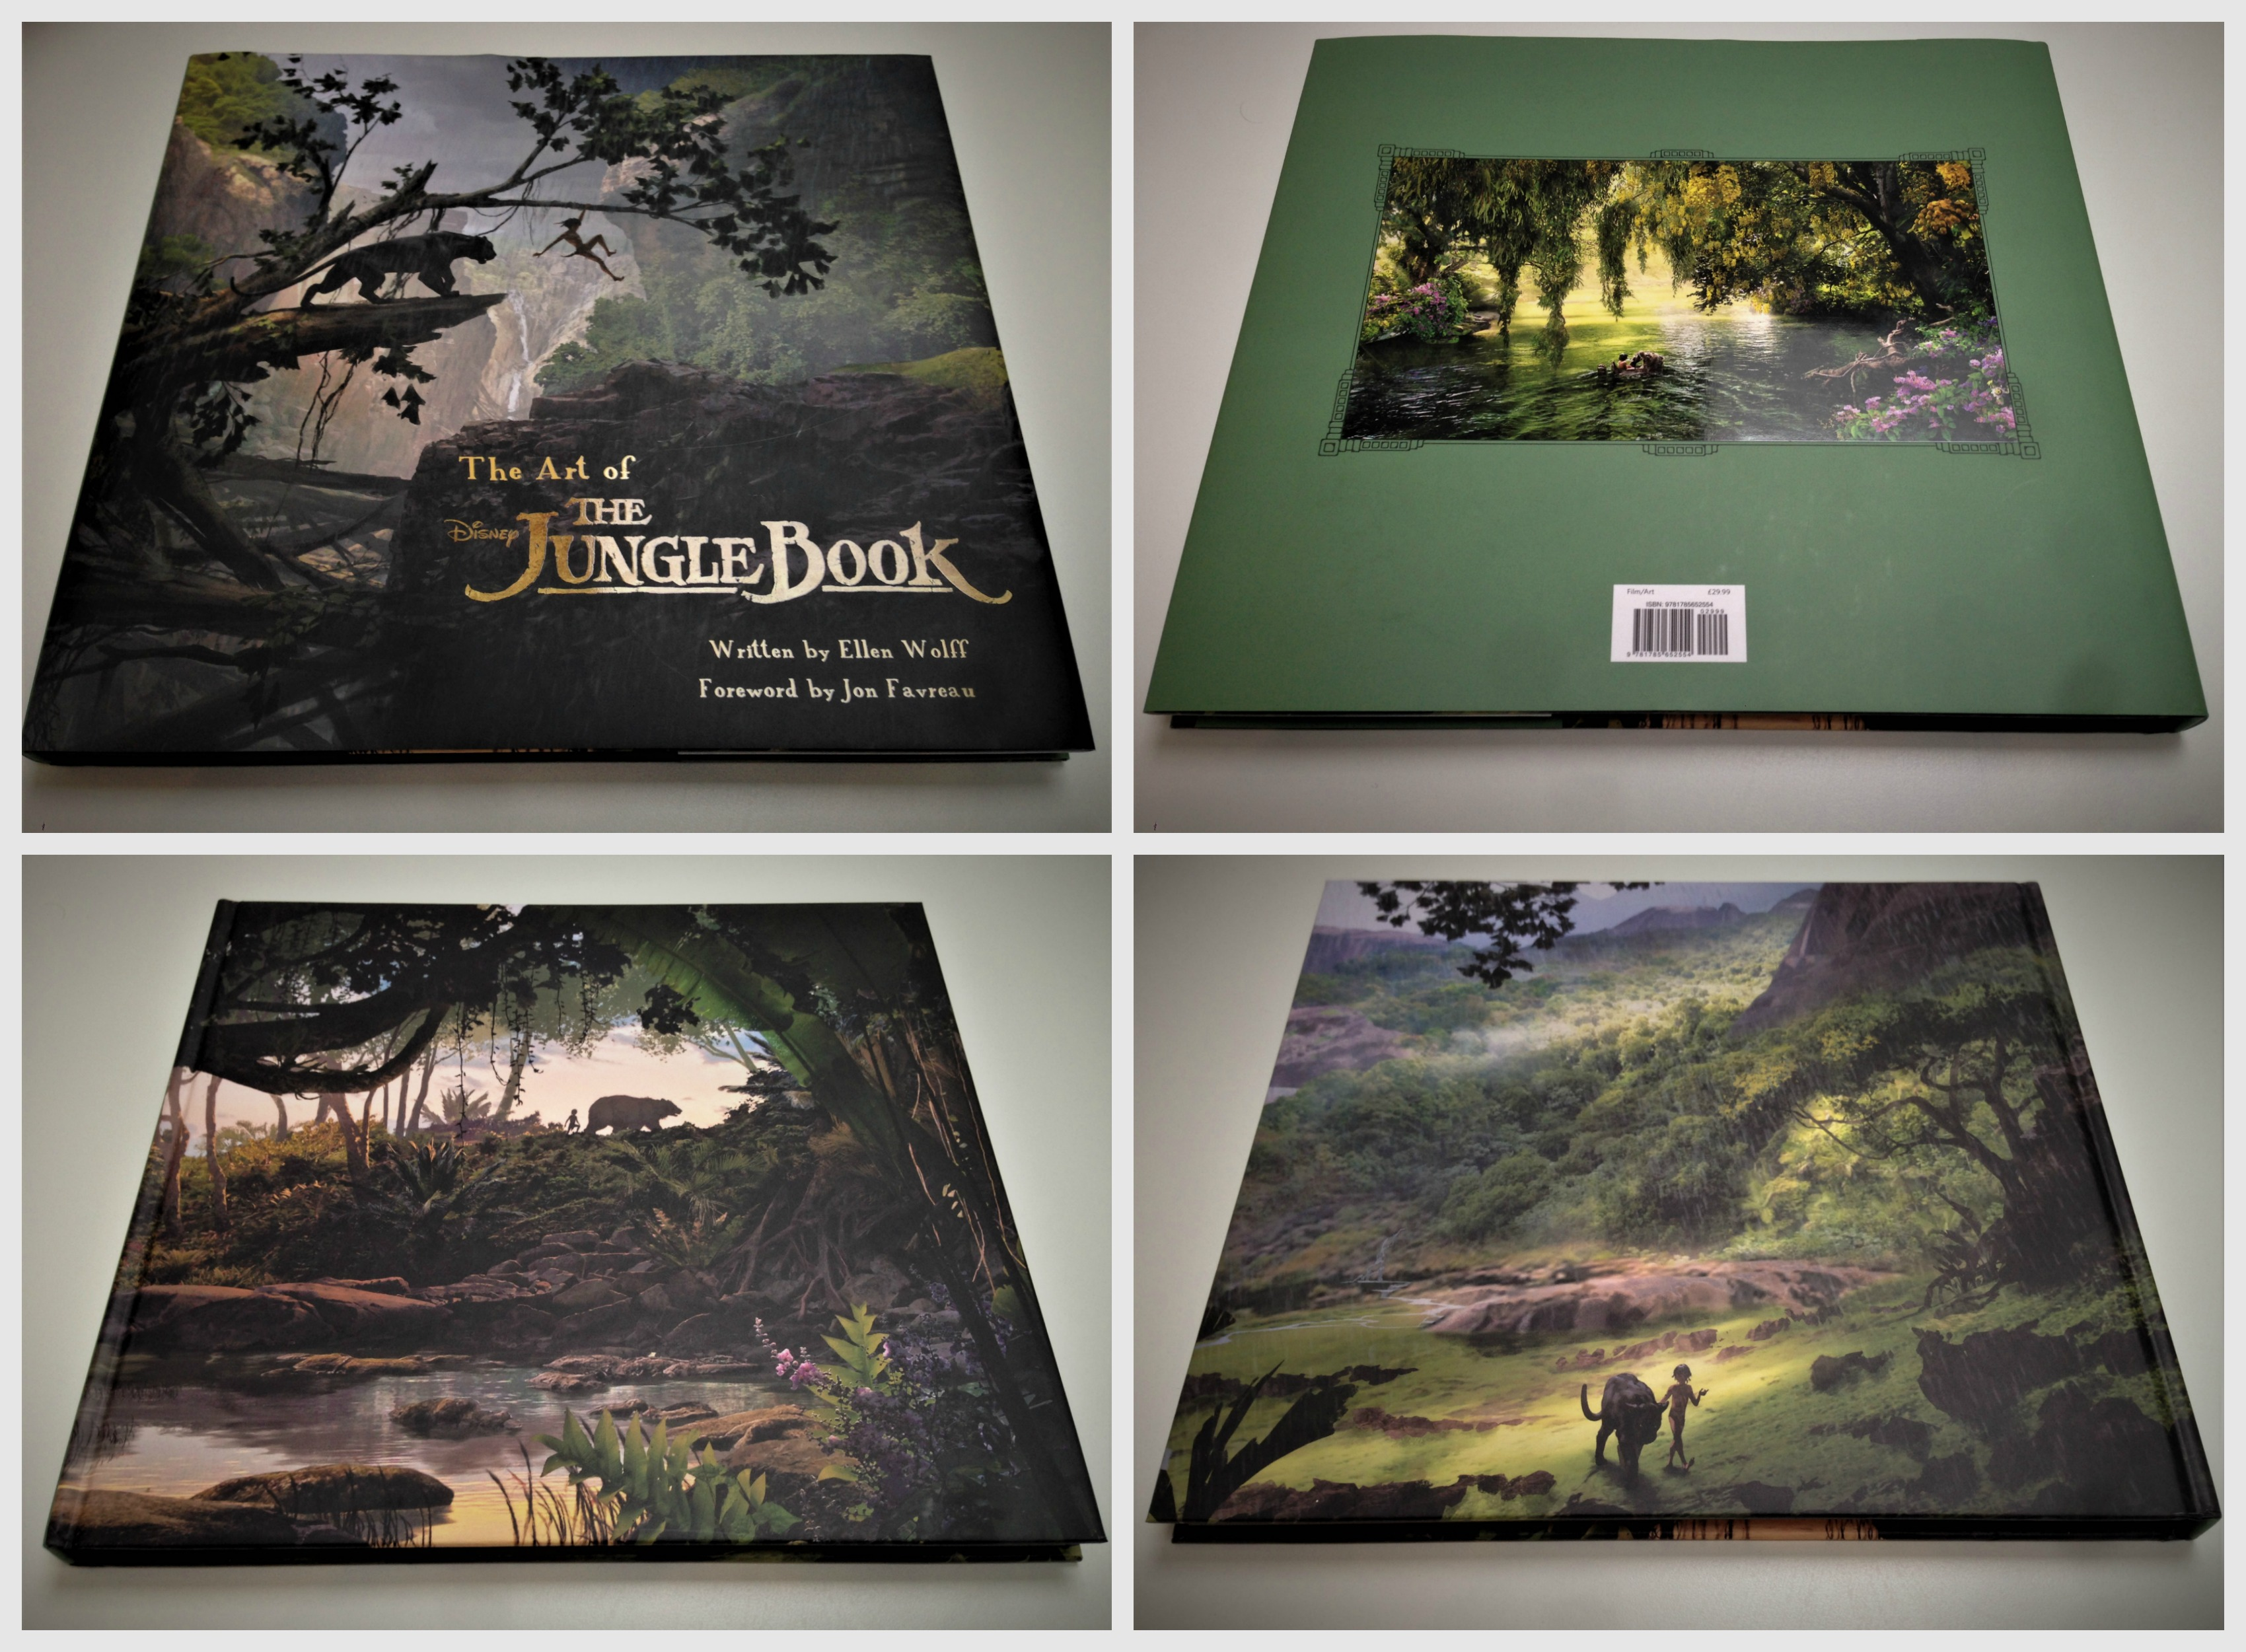 The Art of the JungleBook - Disney - Titan Books - Jon Favreau - Fiktion & Kultur - The Jungle Book - Junglebogen - Elen Wolff (3)